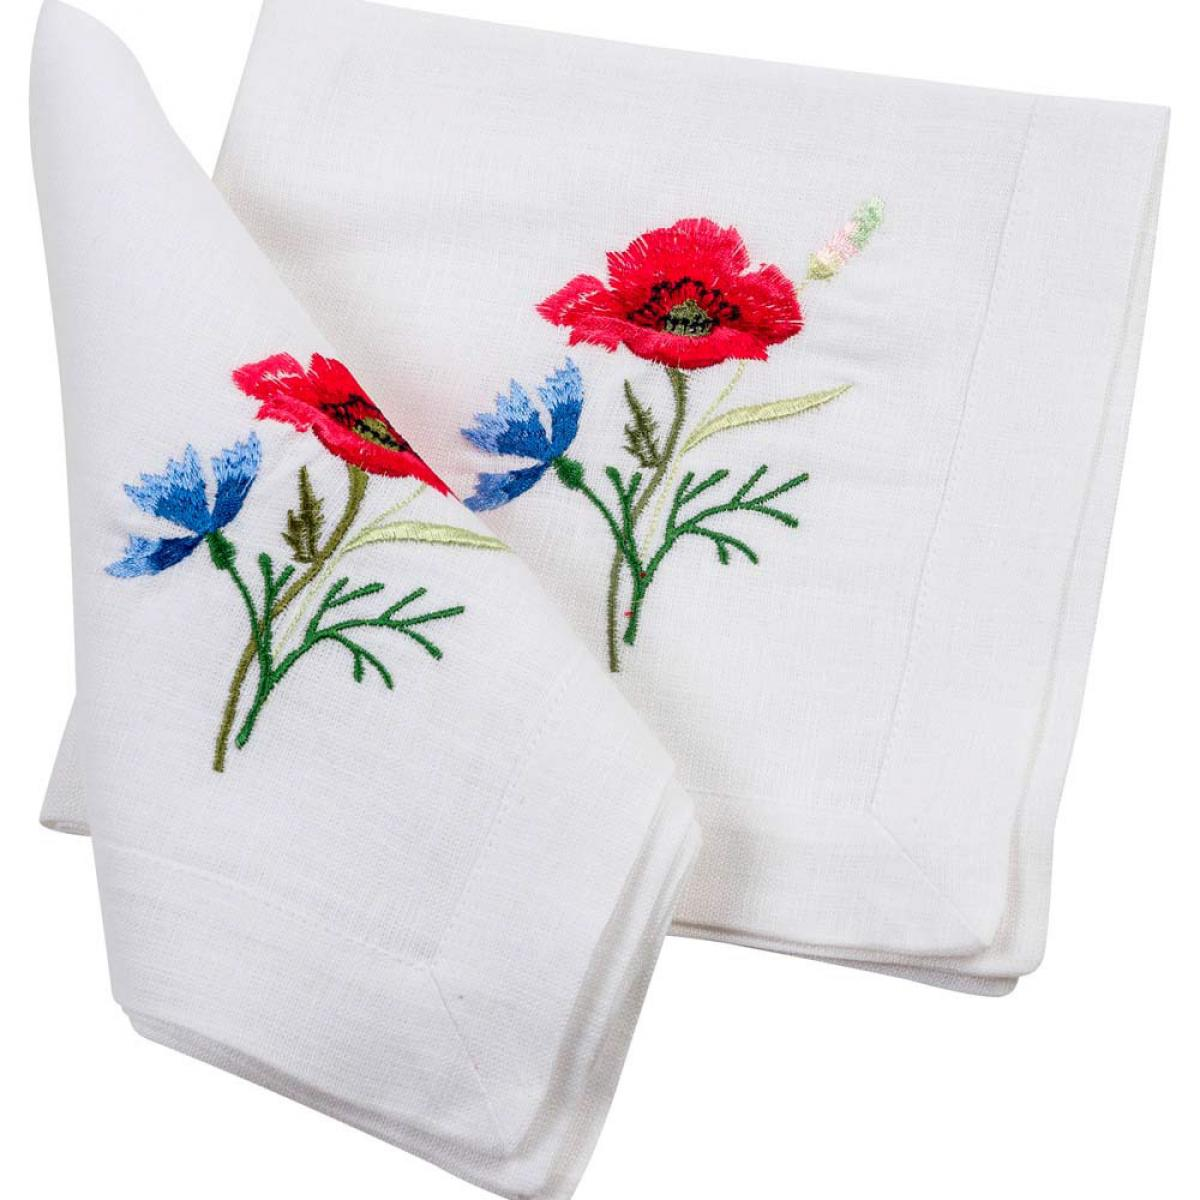 Set of napkins Poppies with cornflowers - 4 pieces